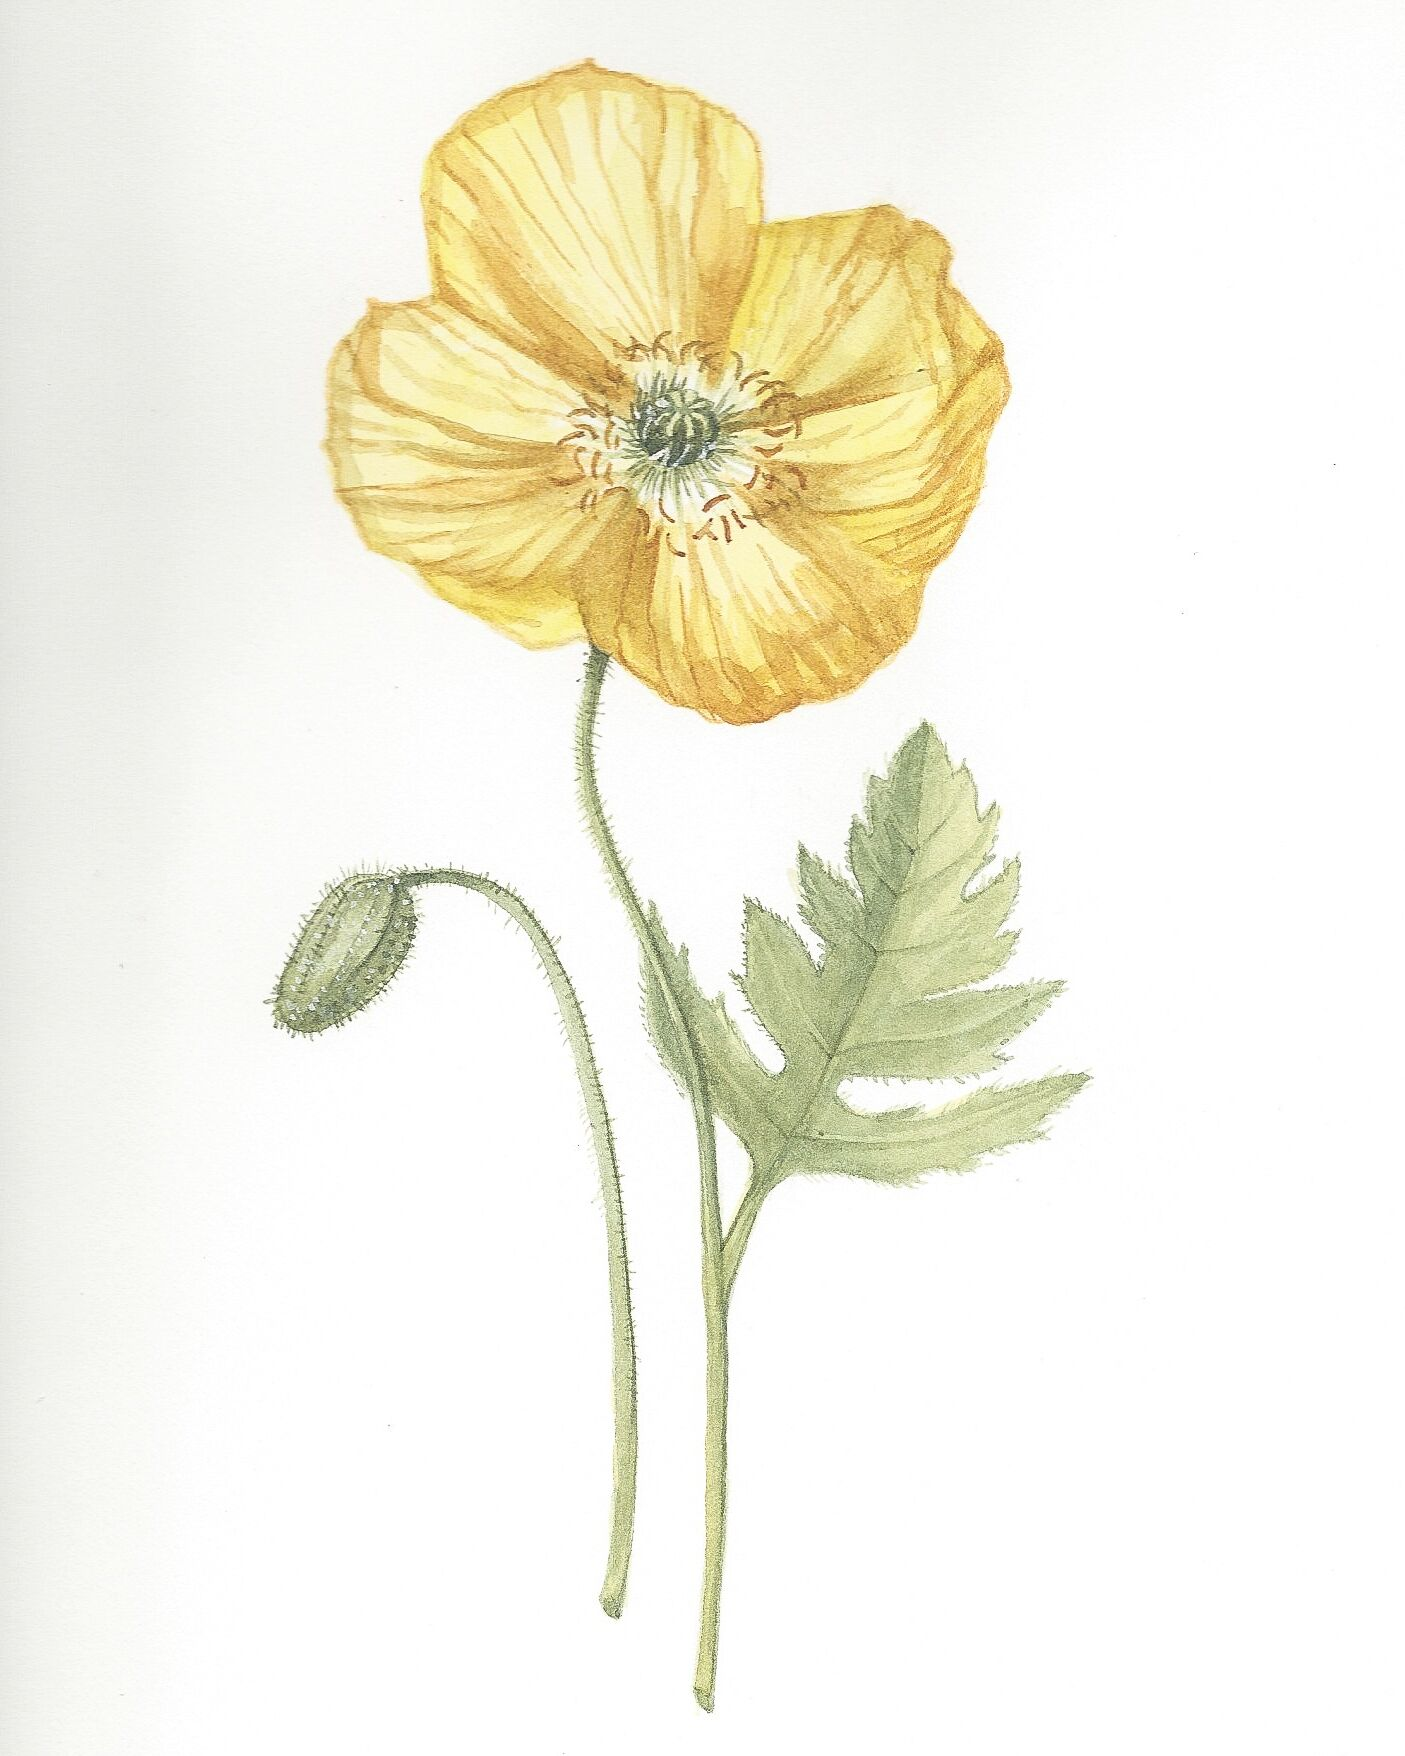 Papaver nudicale, watercolour, June 2019